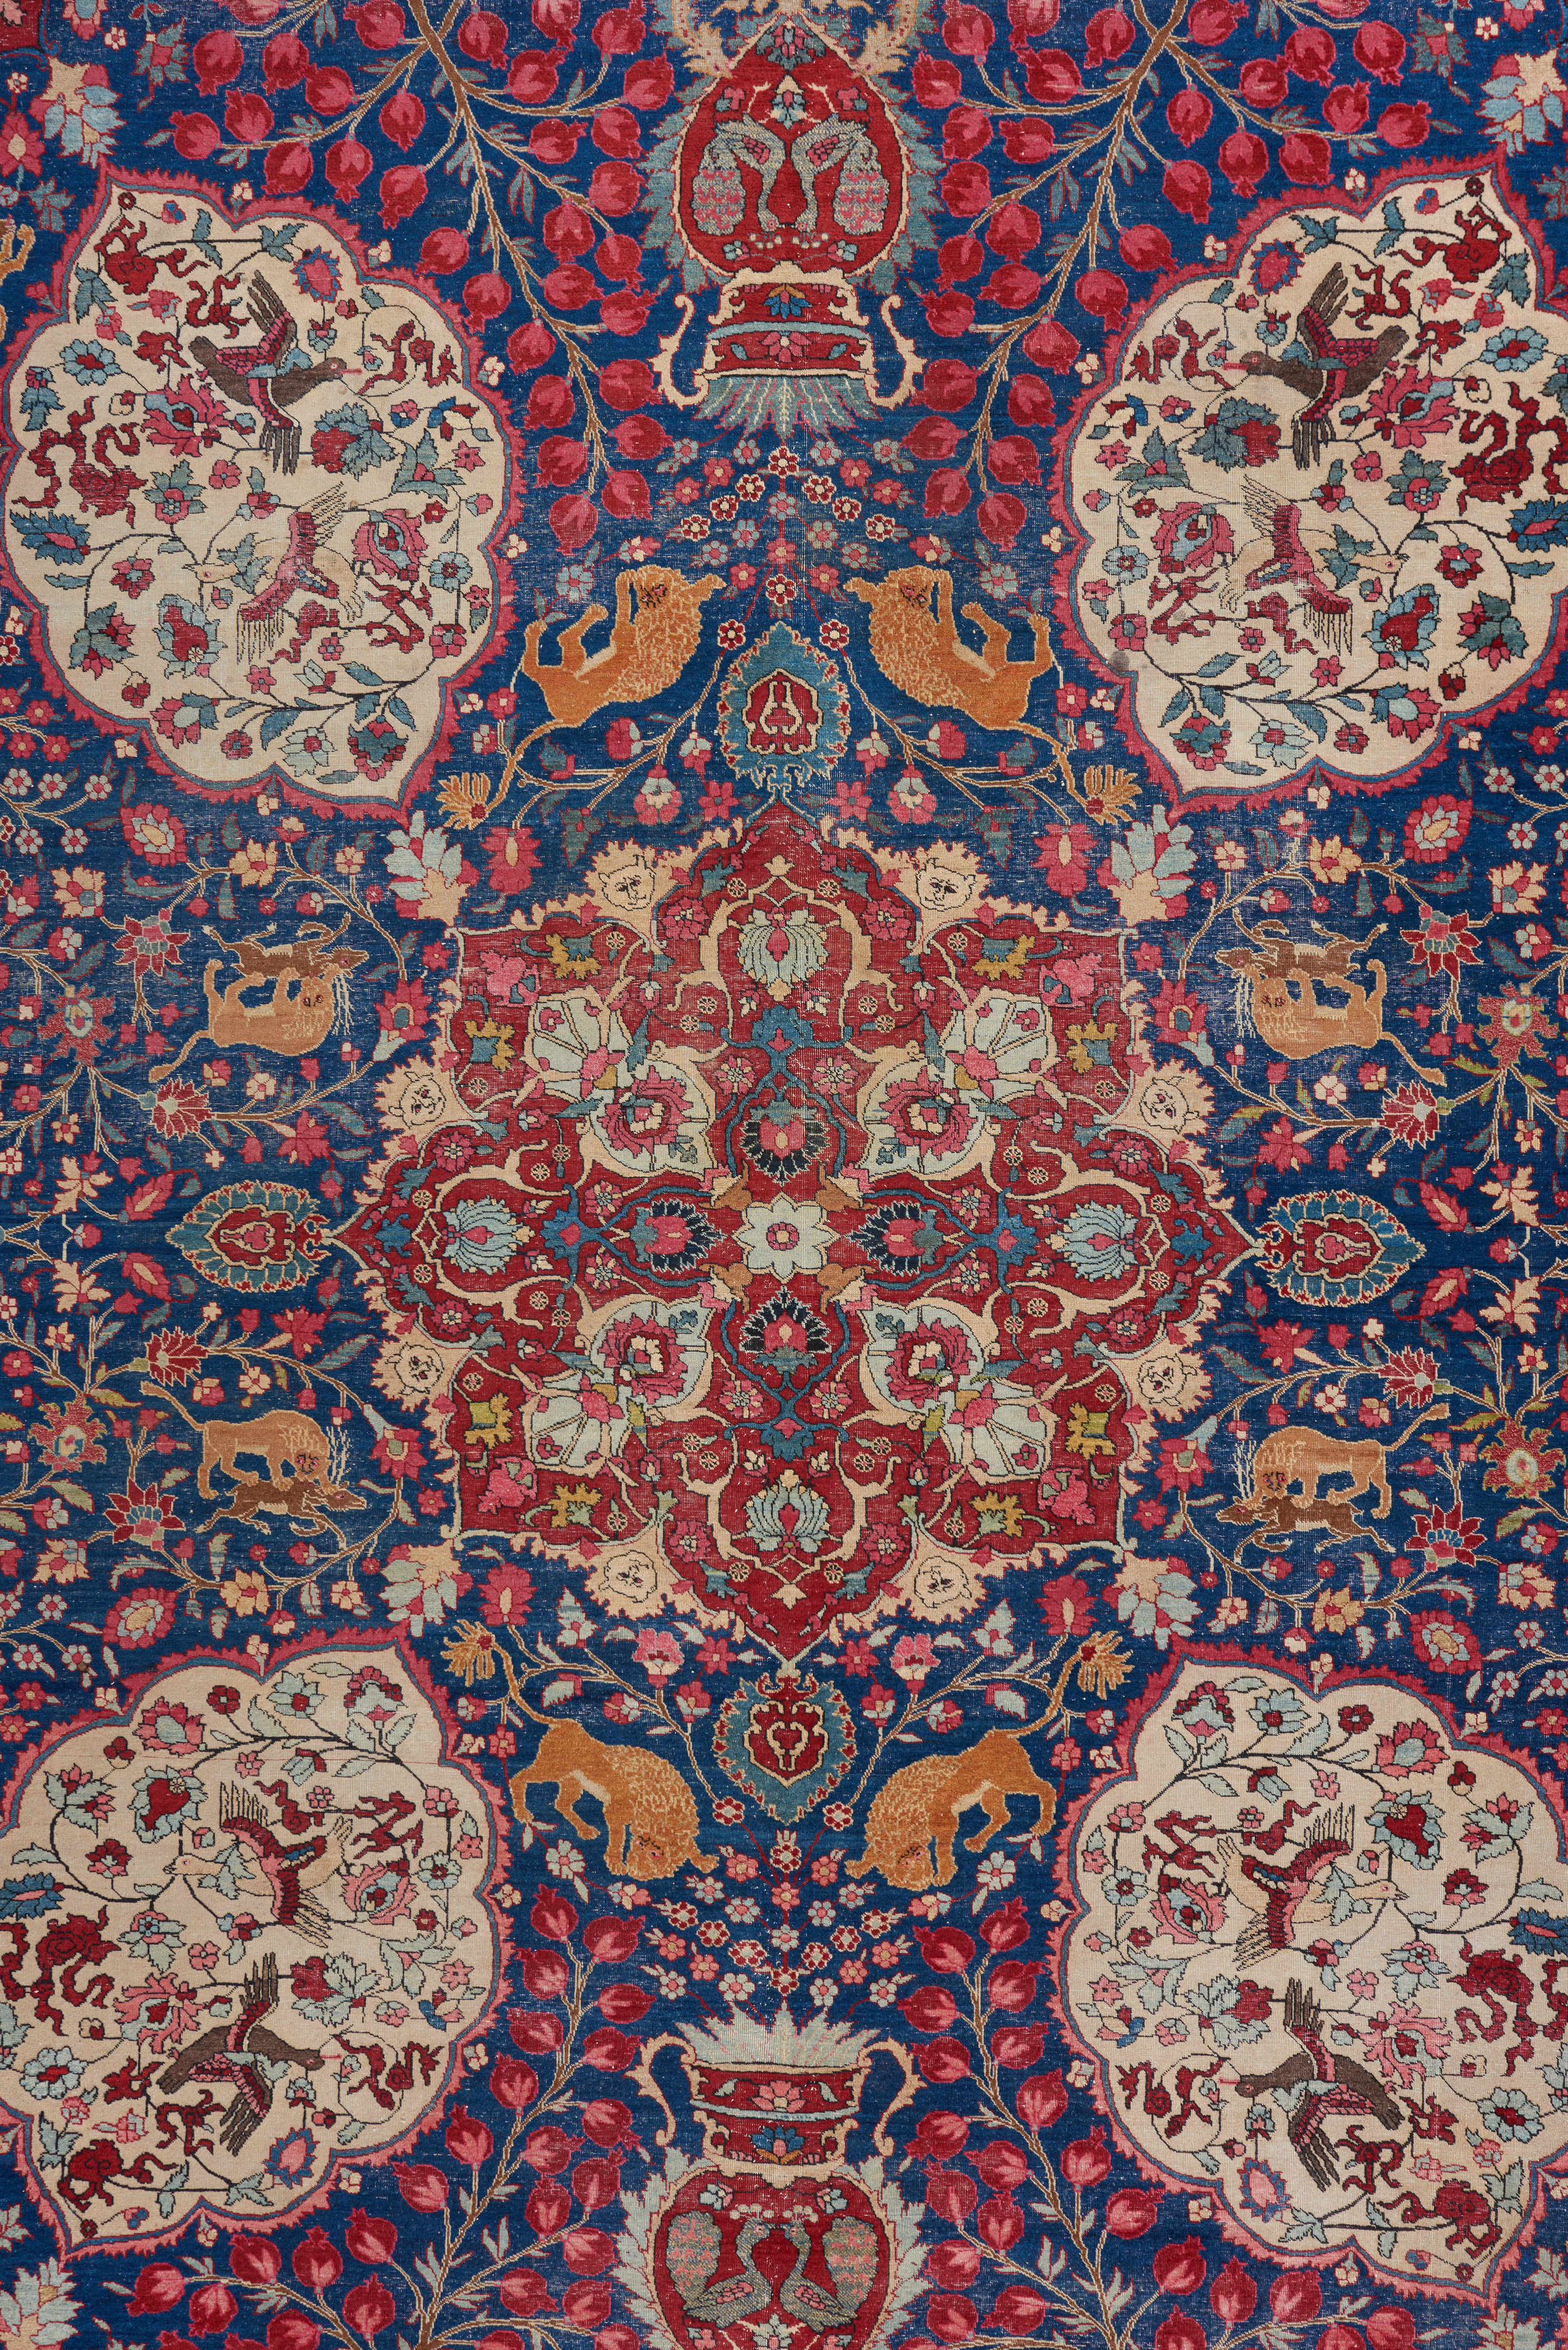 ABOUT US - The Bolour family has been in the antique carpet business for three generations. Starting out in Tehran as the premier destination for foreign collectors of tribal rugs, the business soon expanded to become a leader in the field of Decorative carpets and tapestries throughout Europe and the United States. The Gallery is now located in the heart of the design district in Los Angeles, where father and son Benyamin and Noah Bolour run the operation hand in hand.With a comprehensive inventory spanning almost every category and provenance imaginable, we are uniquely positioned to serve both the highly seasoned collector and the aesthetically-conscious designer/homeowner. In addition to antique carpets, our inventory includes tapestries, textiles and a variety of antique art objects from around the world. All of our pieces are selected with careful consideration in regards to historical importance and aesthetic merit.Please visit our gallery at 932 N. La Cienega blvd. By appointment only.Contact us by email at noah@bbolour.com or by phone at 310-289-7959.